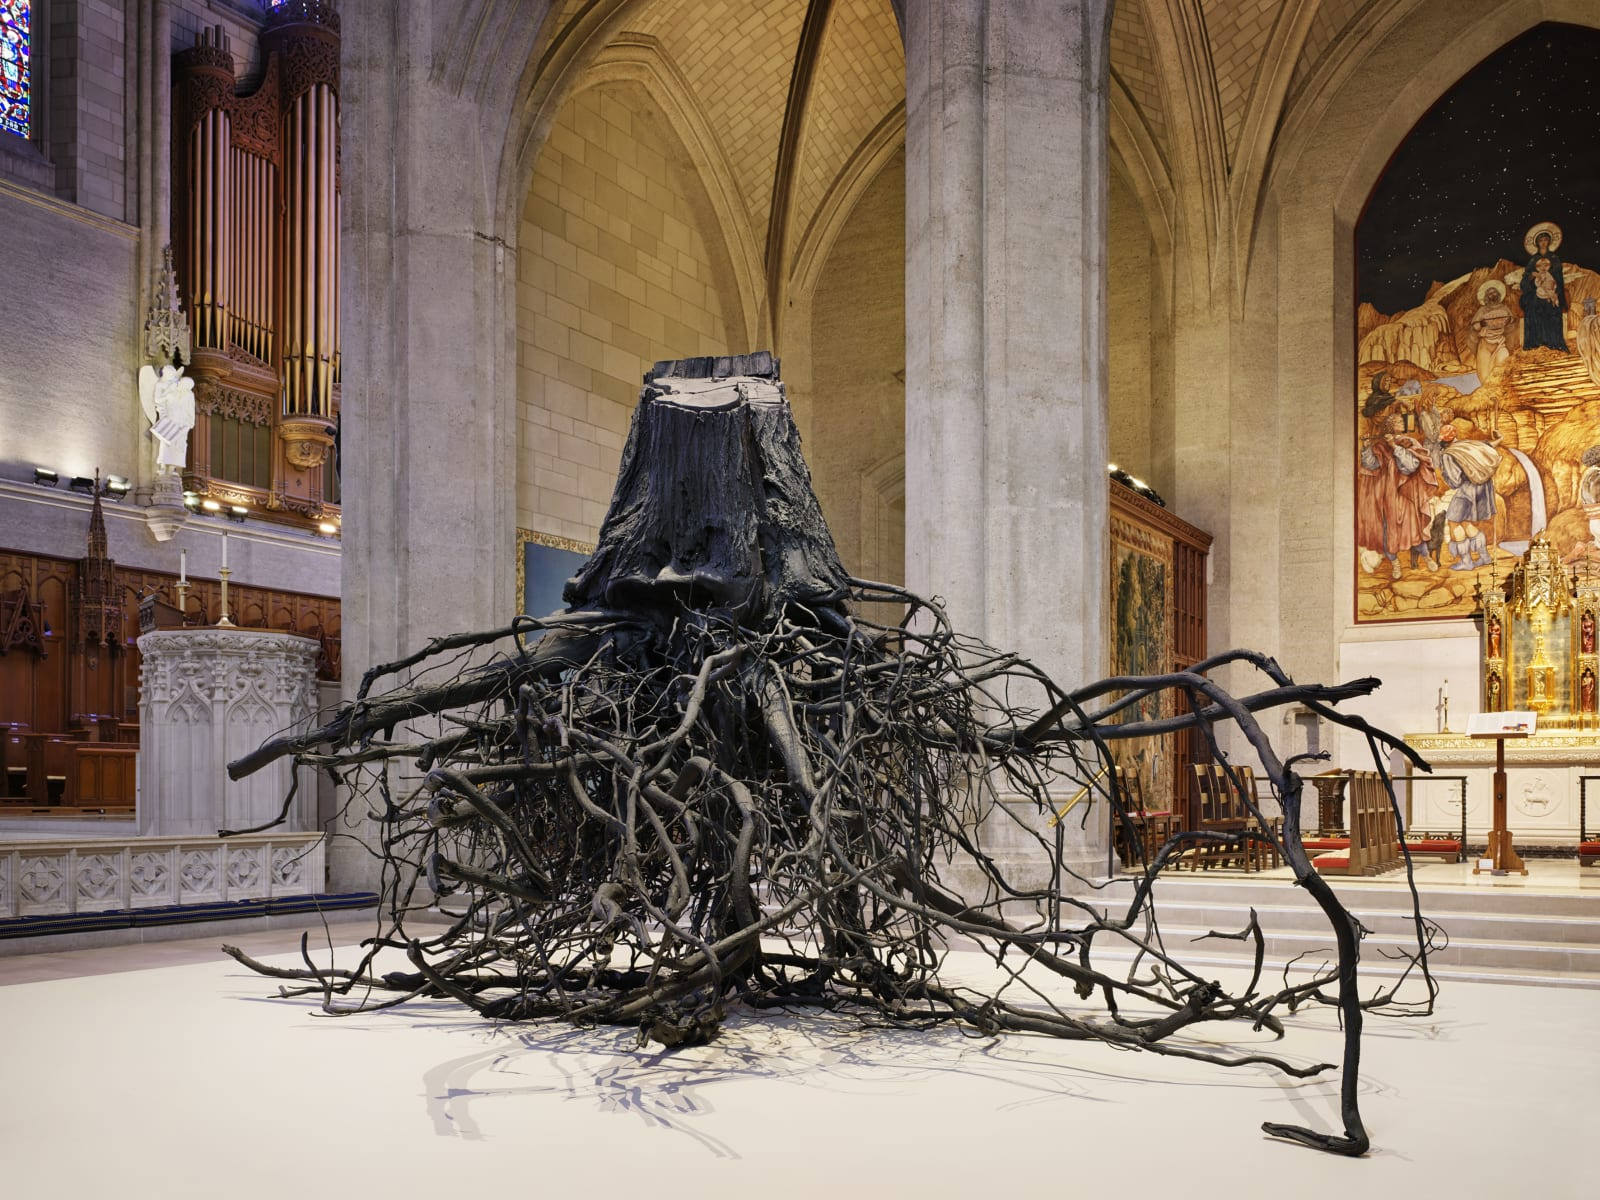 <p>Installation view: 'Unearthed', Grace Cathedral, San Francisco, California (2019)</p>